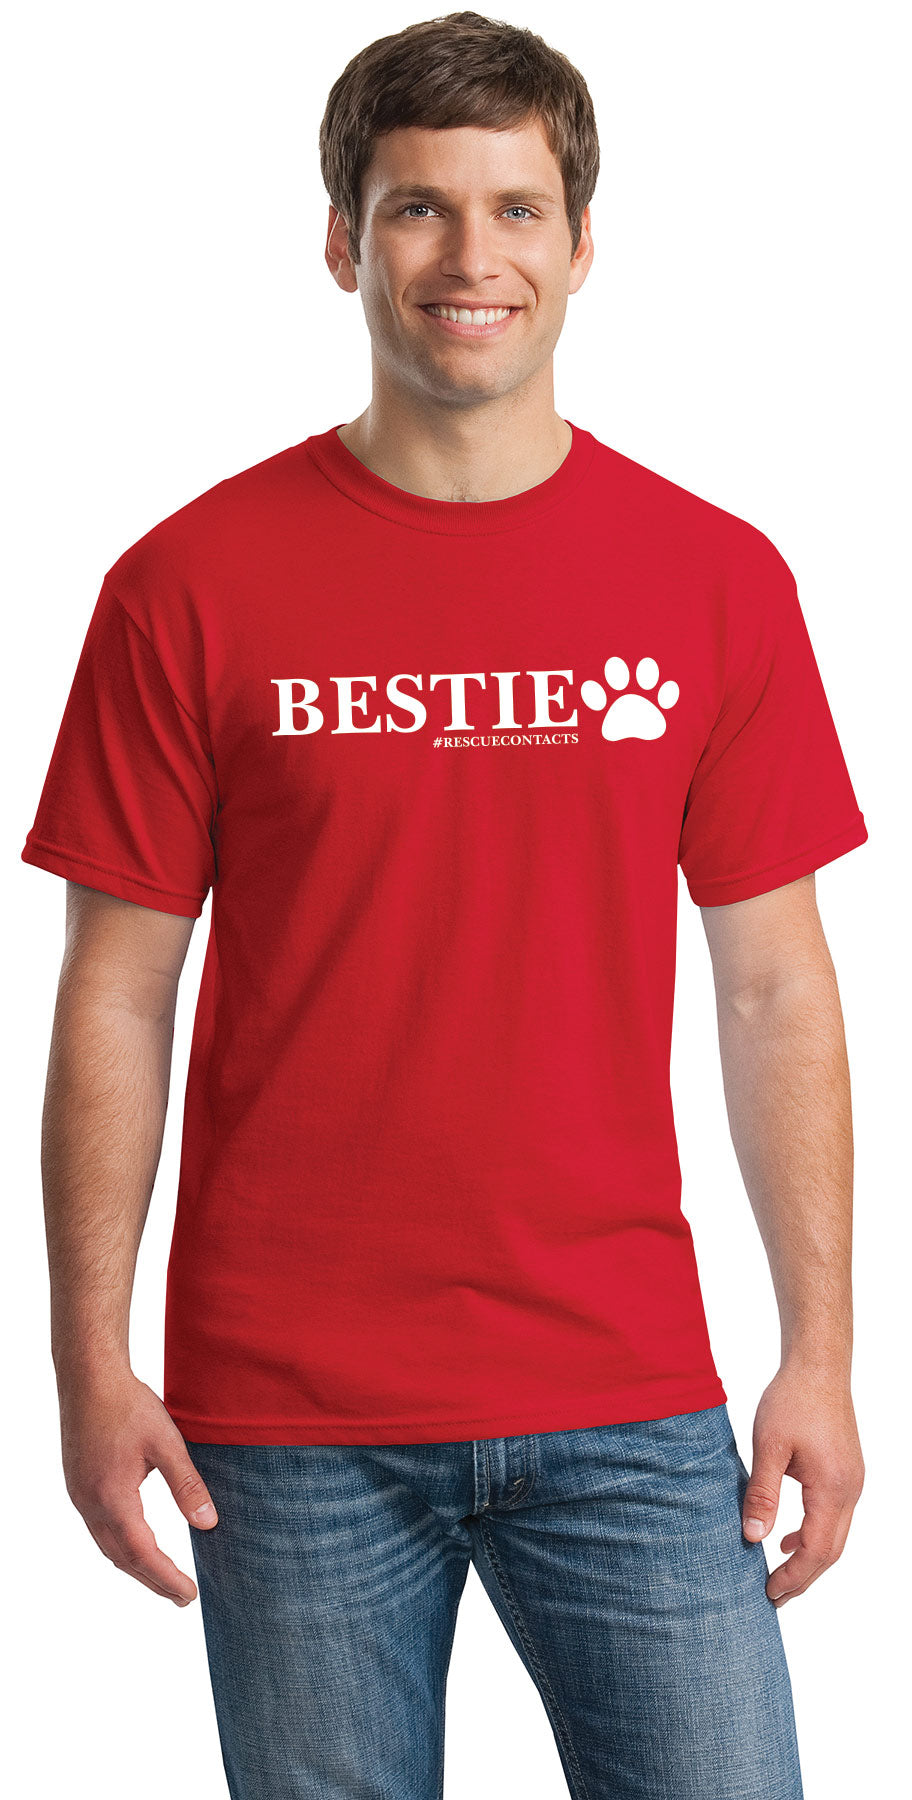 Black tee shirt for men that says bestie in white print with dog paw and # rescue contacts